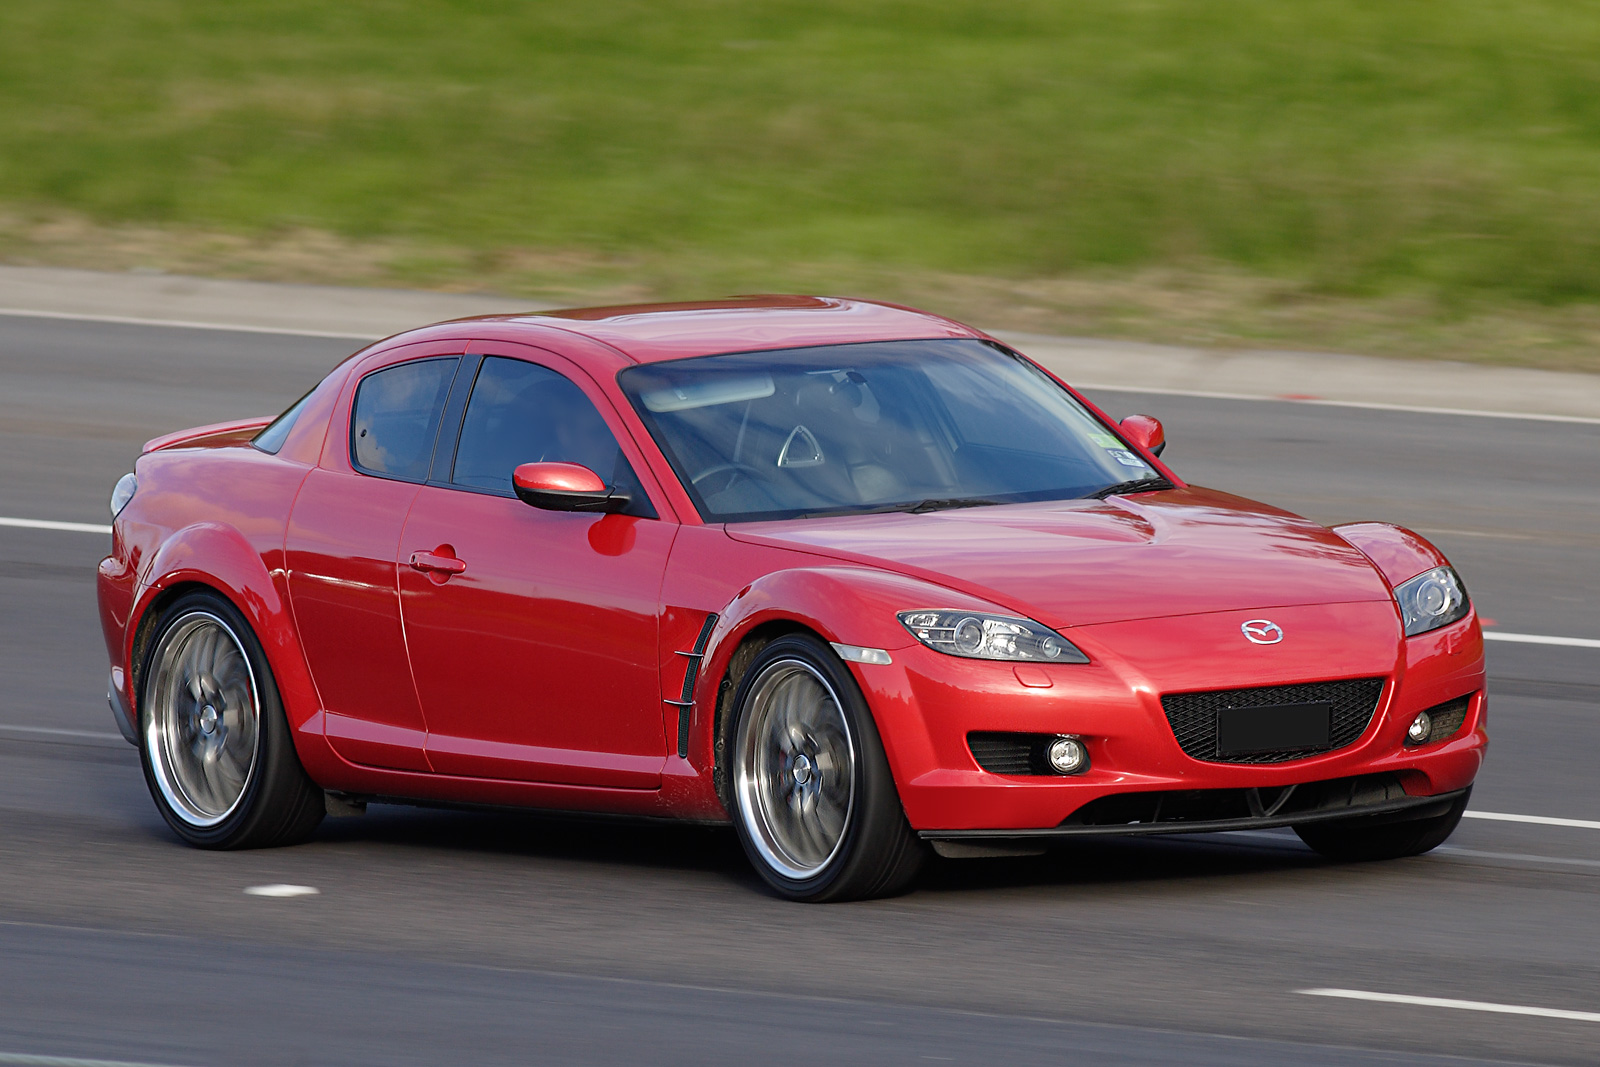 [Image: Mazda_RX-8_on_freeway.jpg]